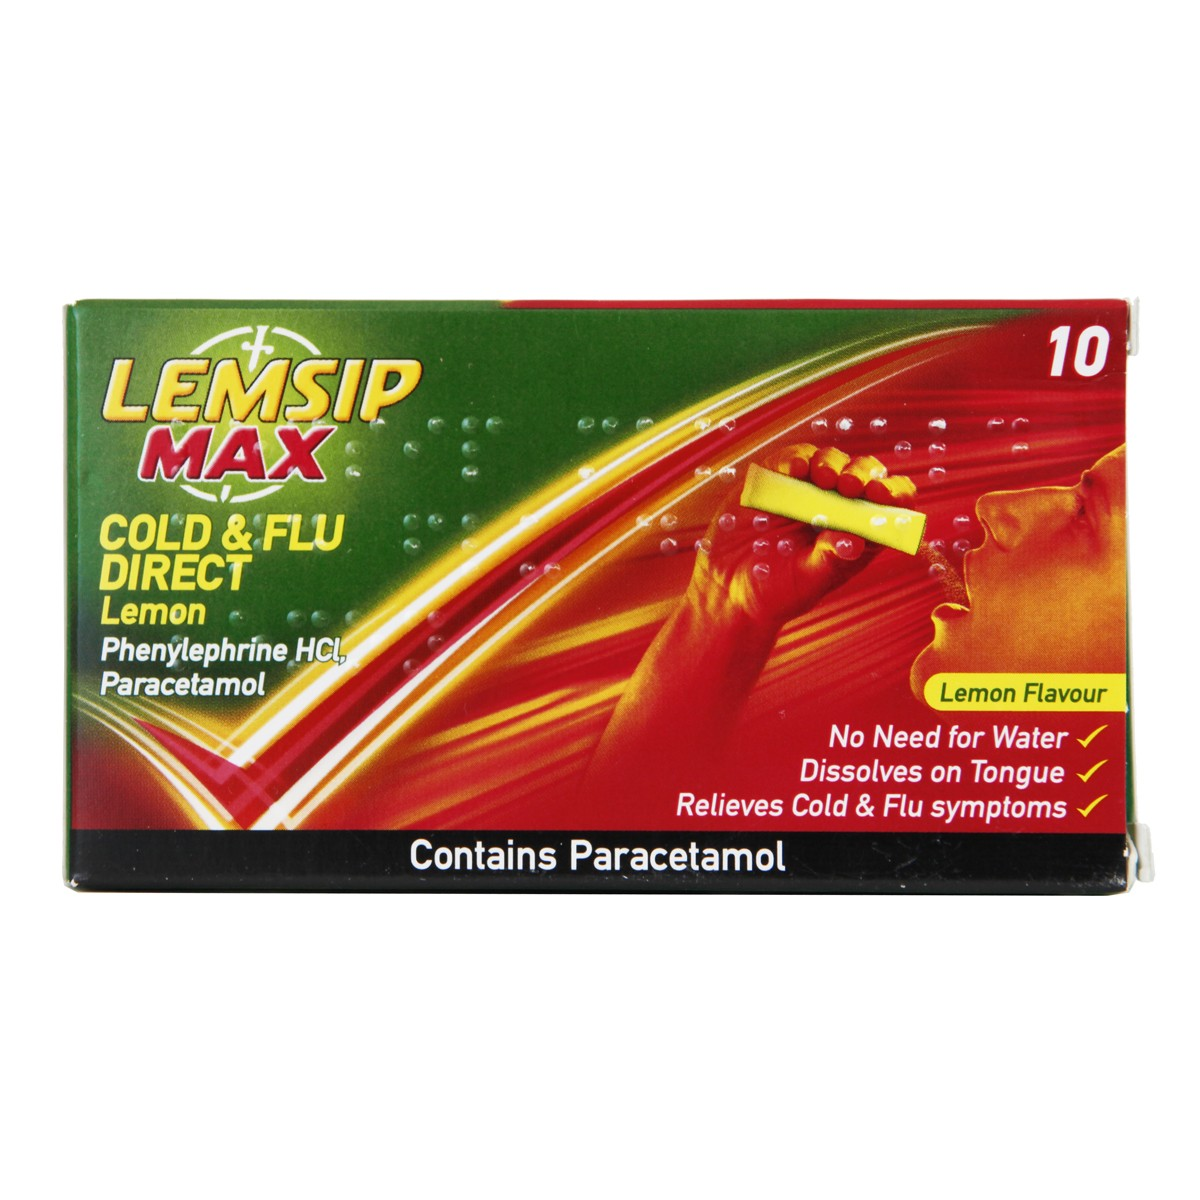 Lemsip Max Cold & Flu Direct Lemon